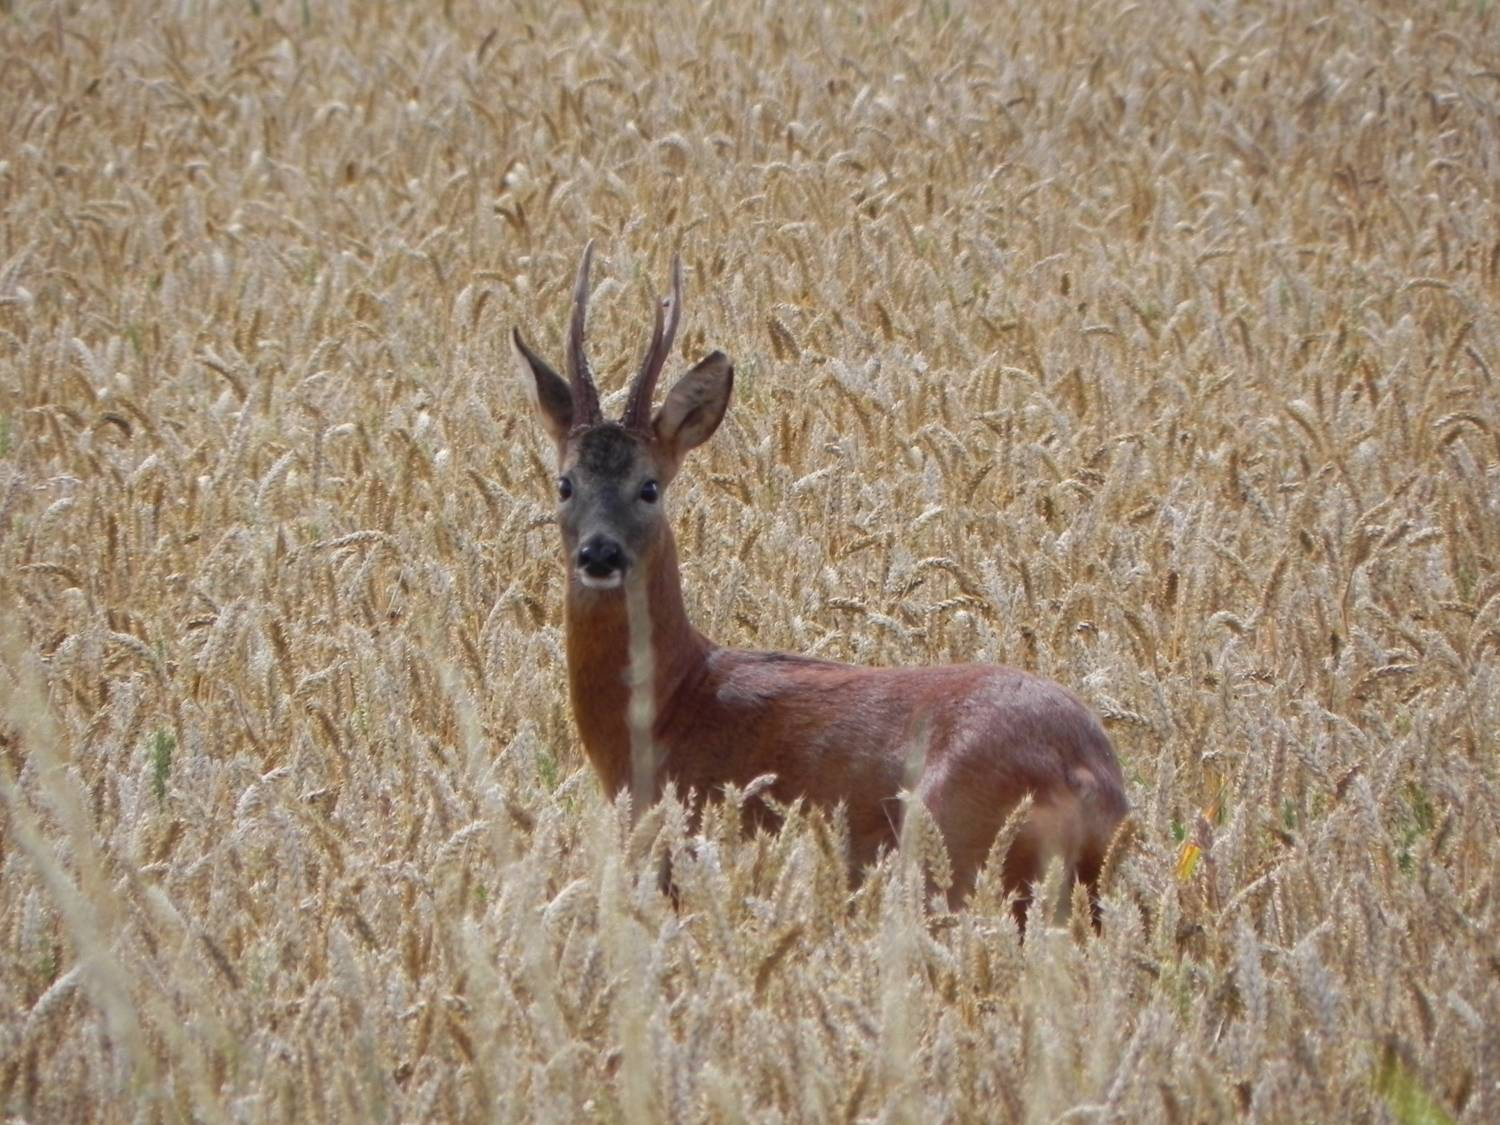 Roe Deer explores the wheat fields